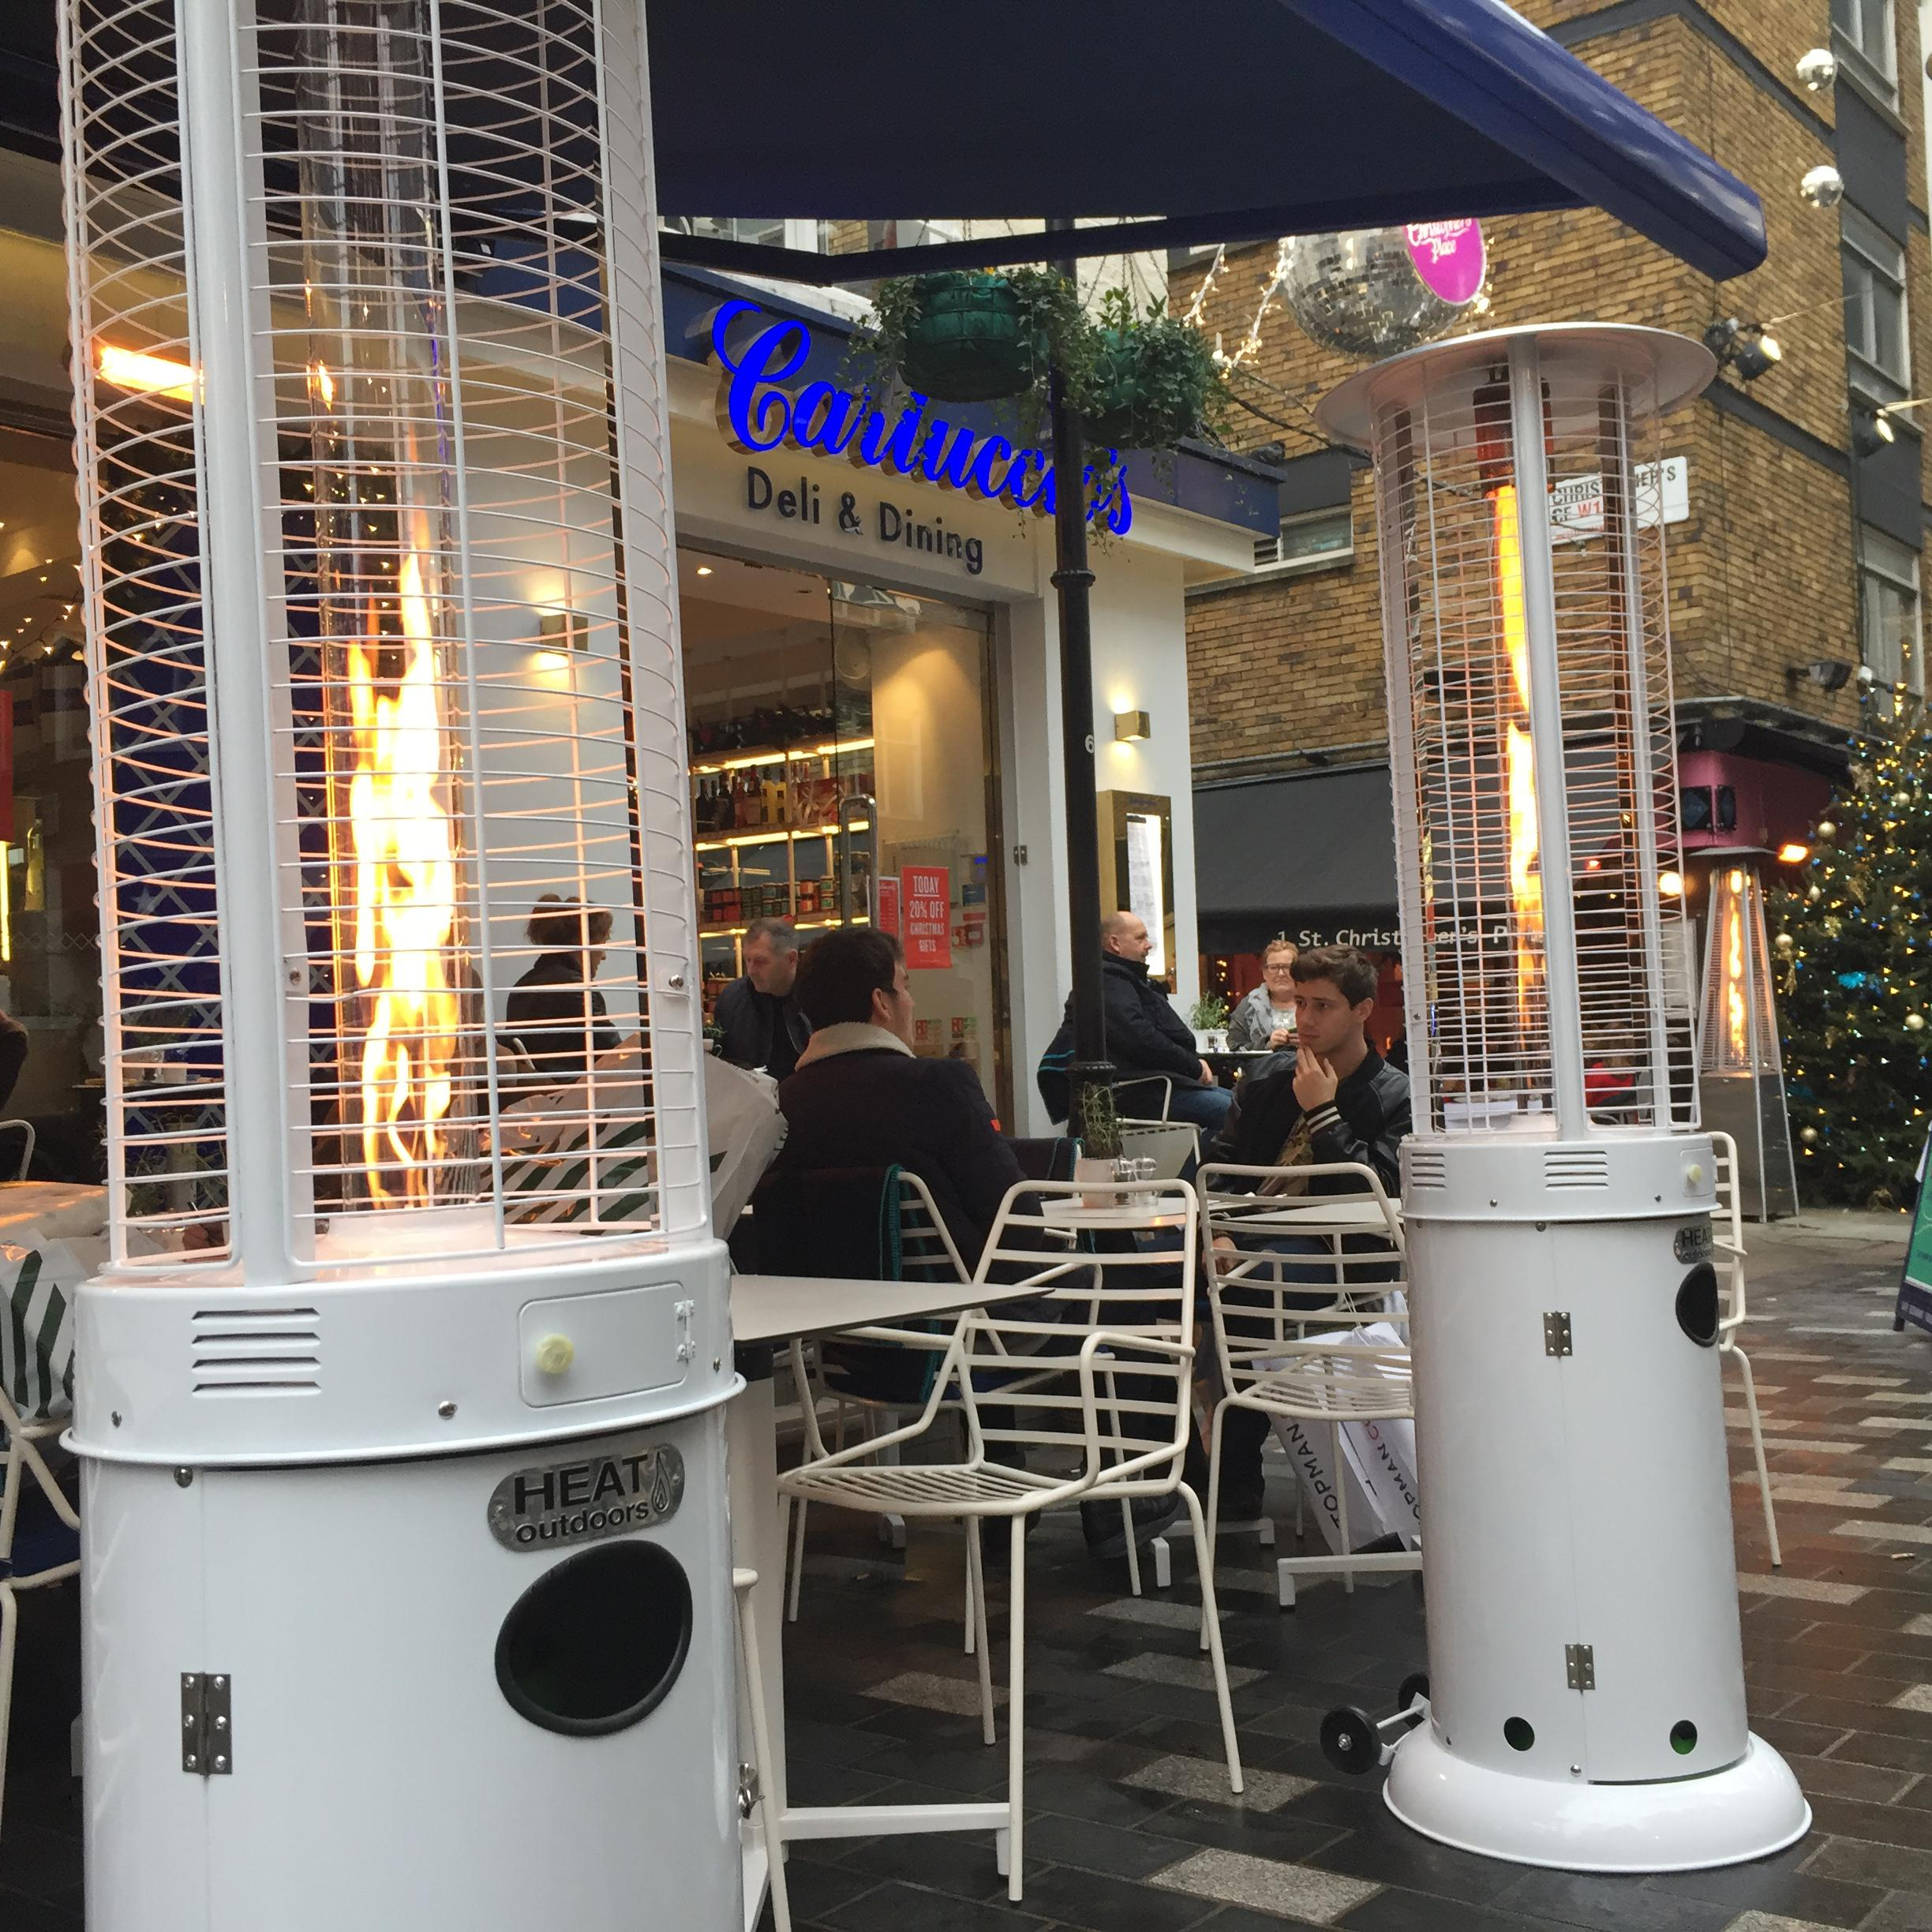 Commercial Heaters Commercial Patio Heaters 2 Year within proportions 2448 X 2448